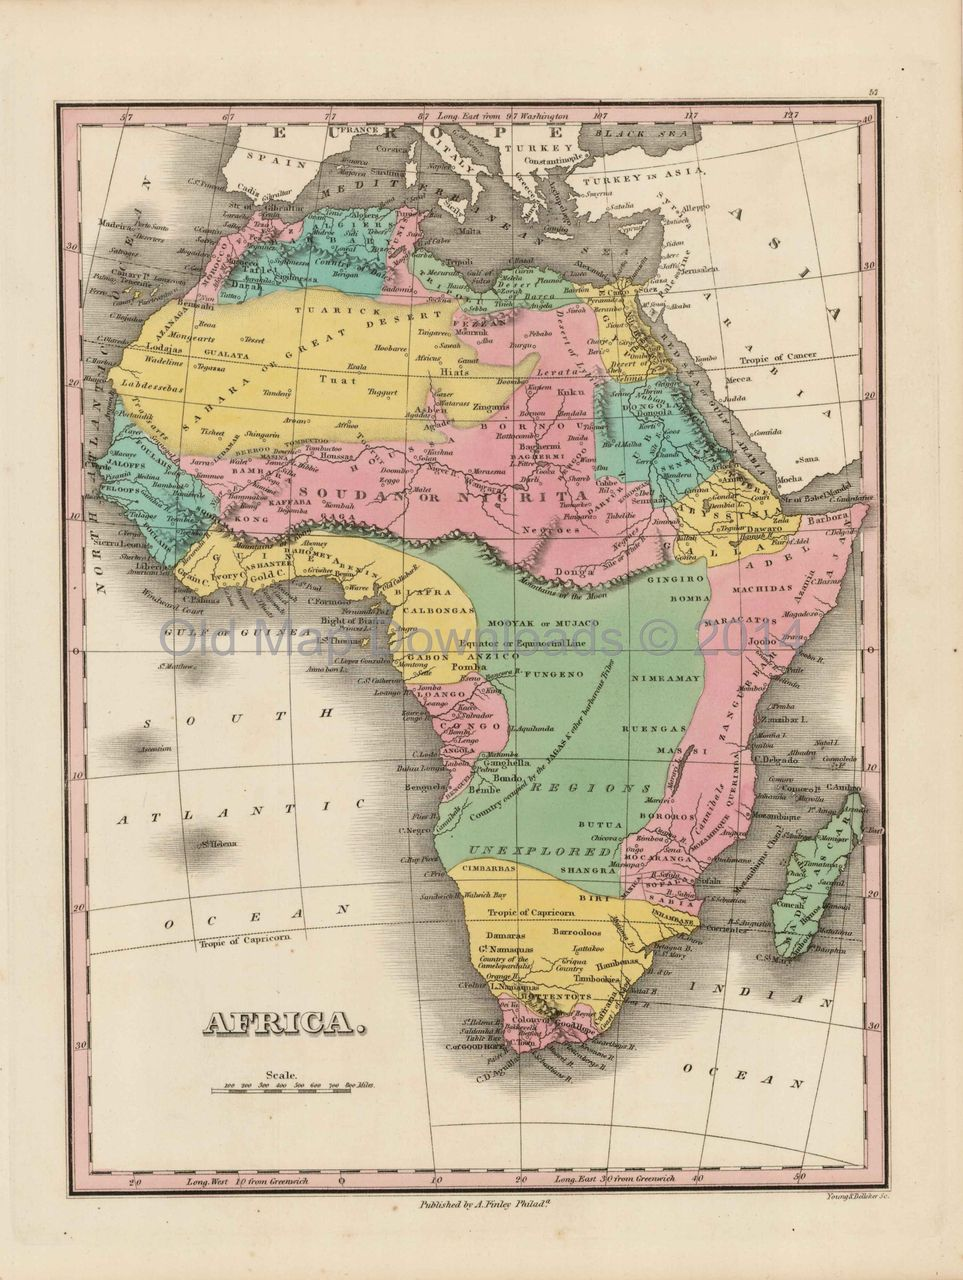 Old map downloads africa continent old map scan finley 1824 999 africa continent old map finley 1824 digital image scan download printable gumiabroncs Gallery